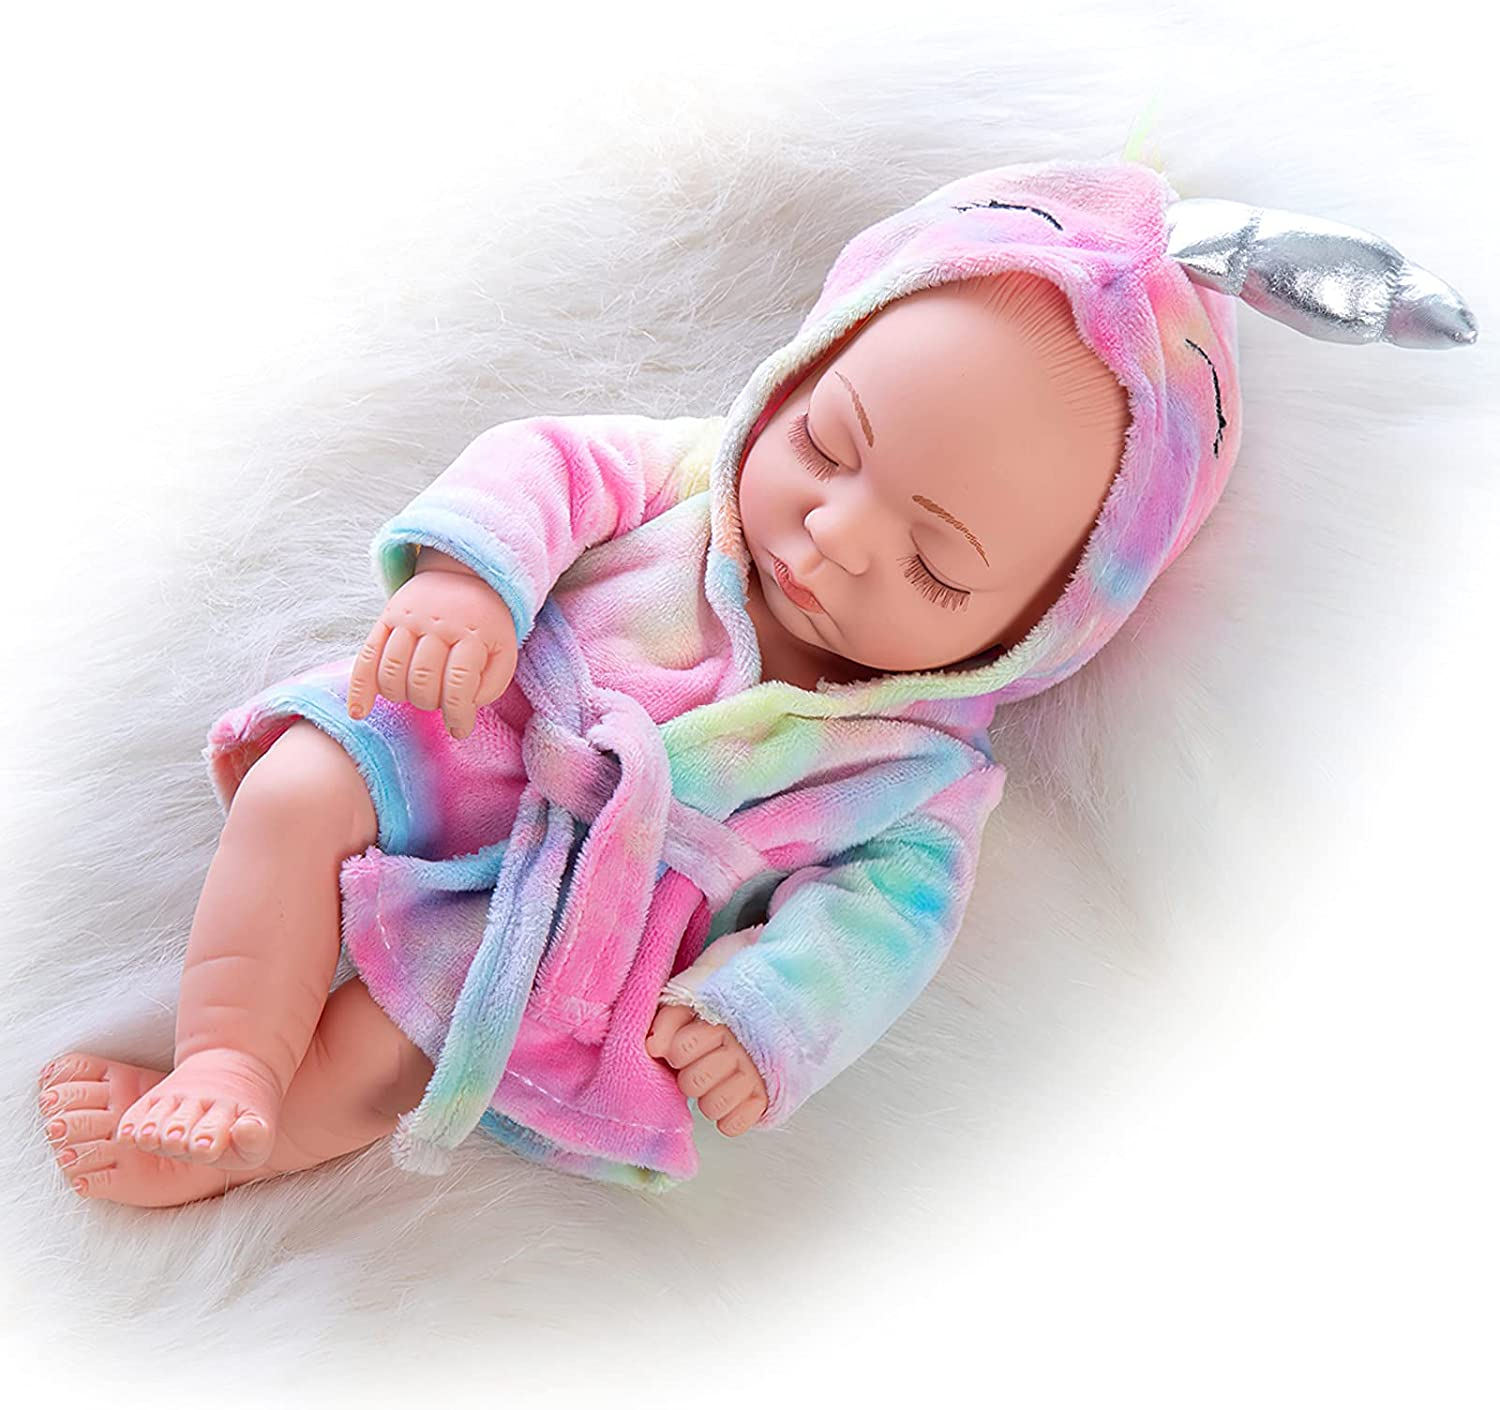 UNICORN ELEMENT 10 Inch Newborn Reborn NEW before selling ☆ Baby and Clothes Set Doll Free shipping New